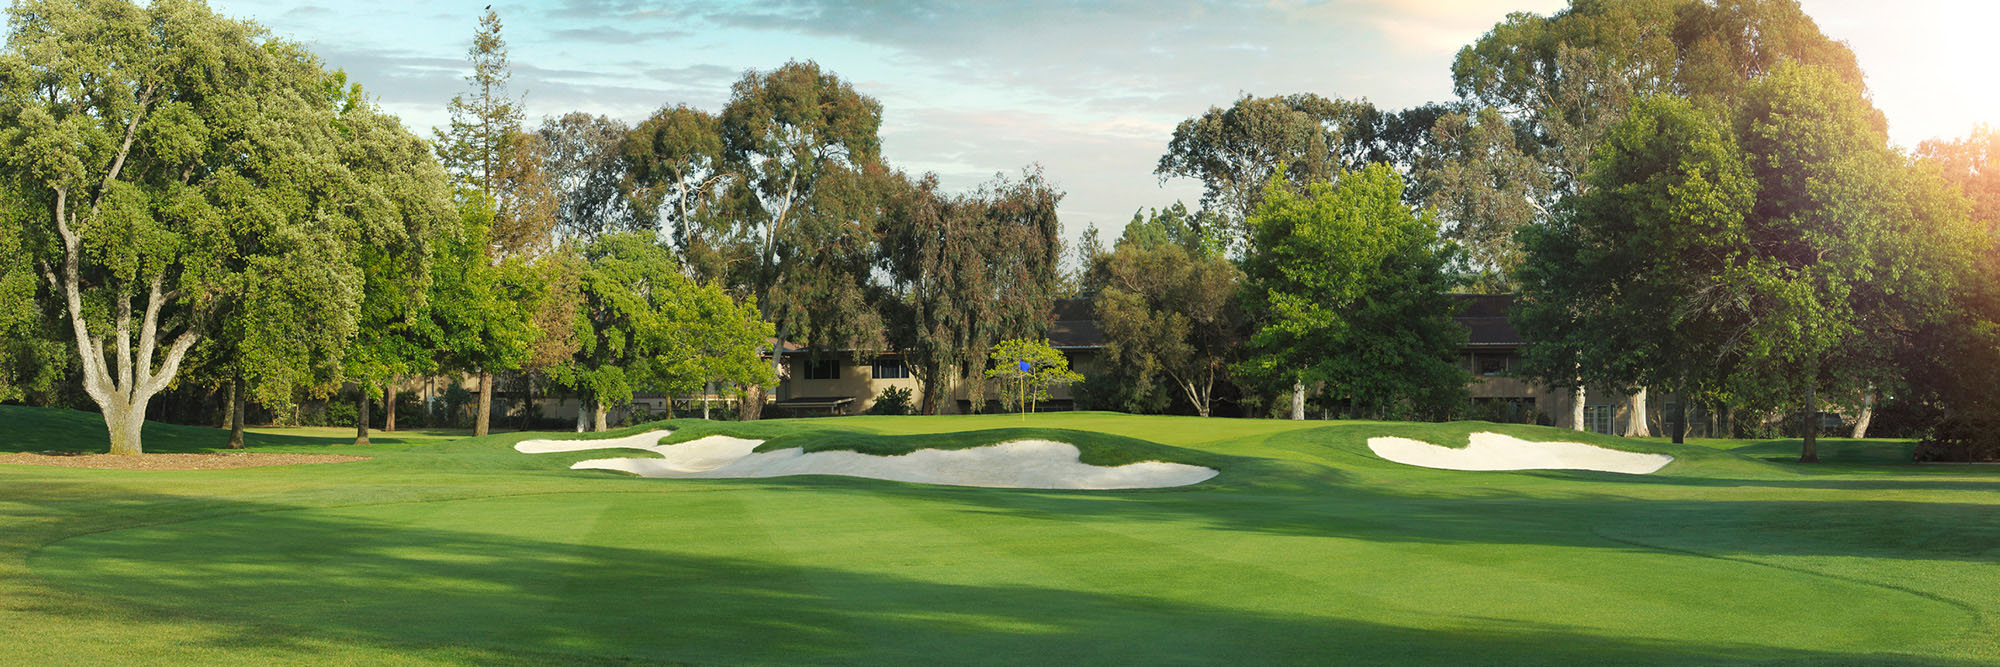 Golf Course Image - San Jose Country Club No. 14